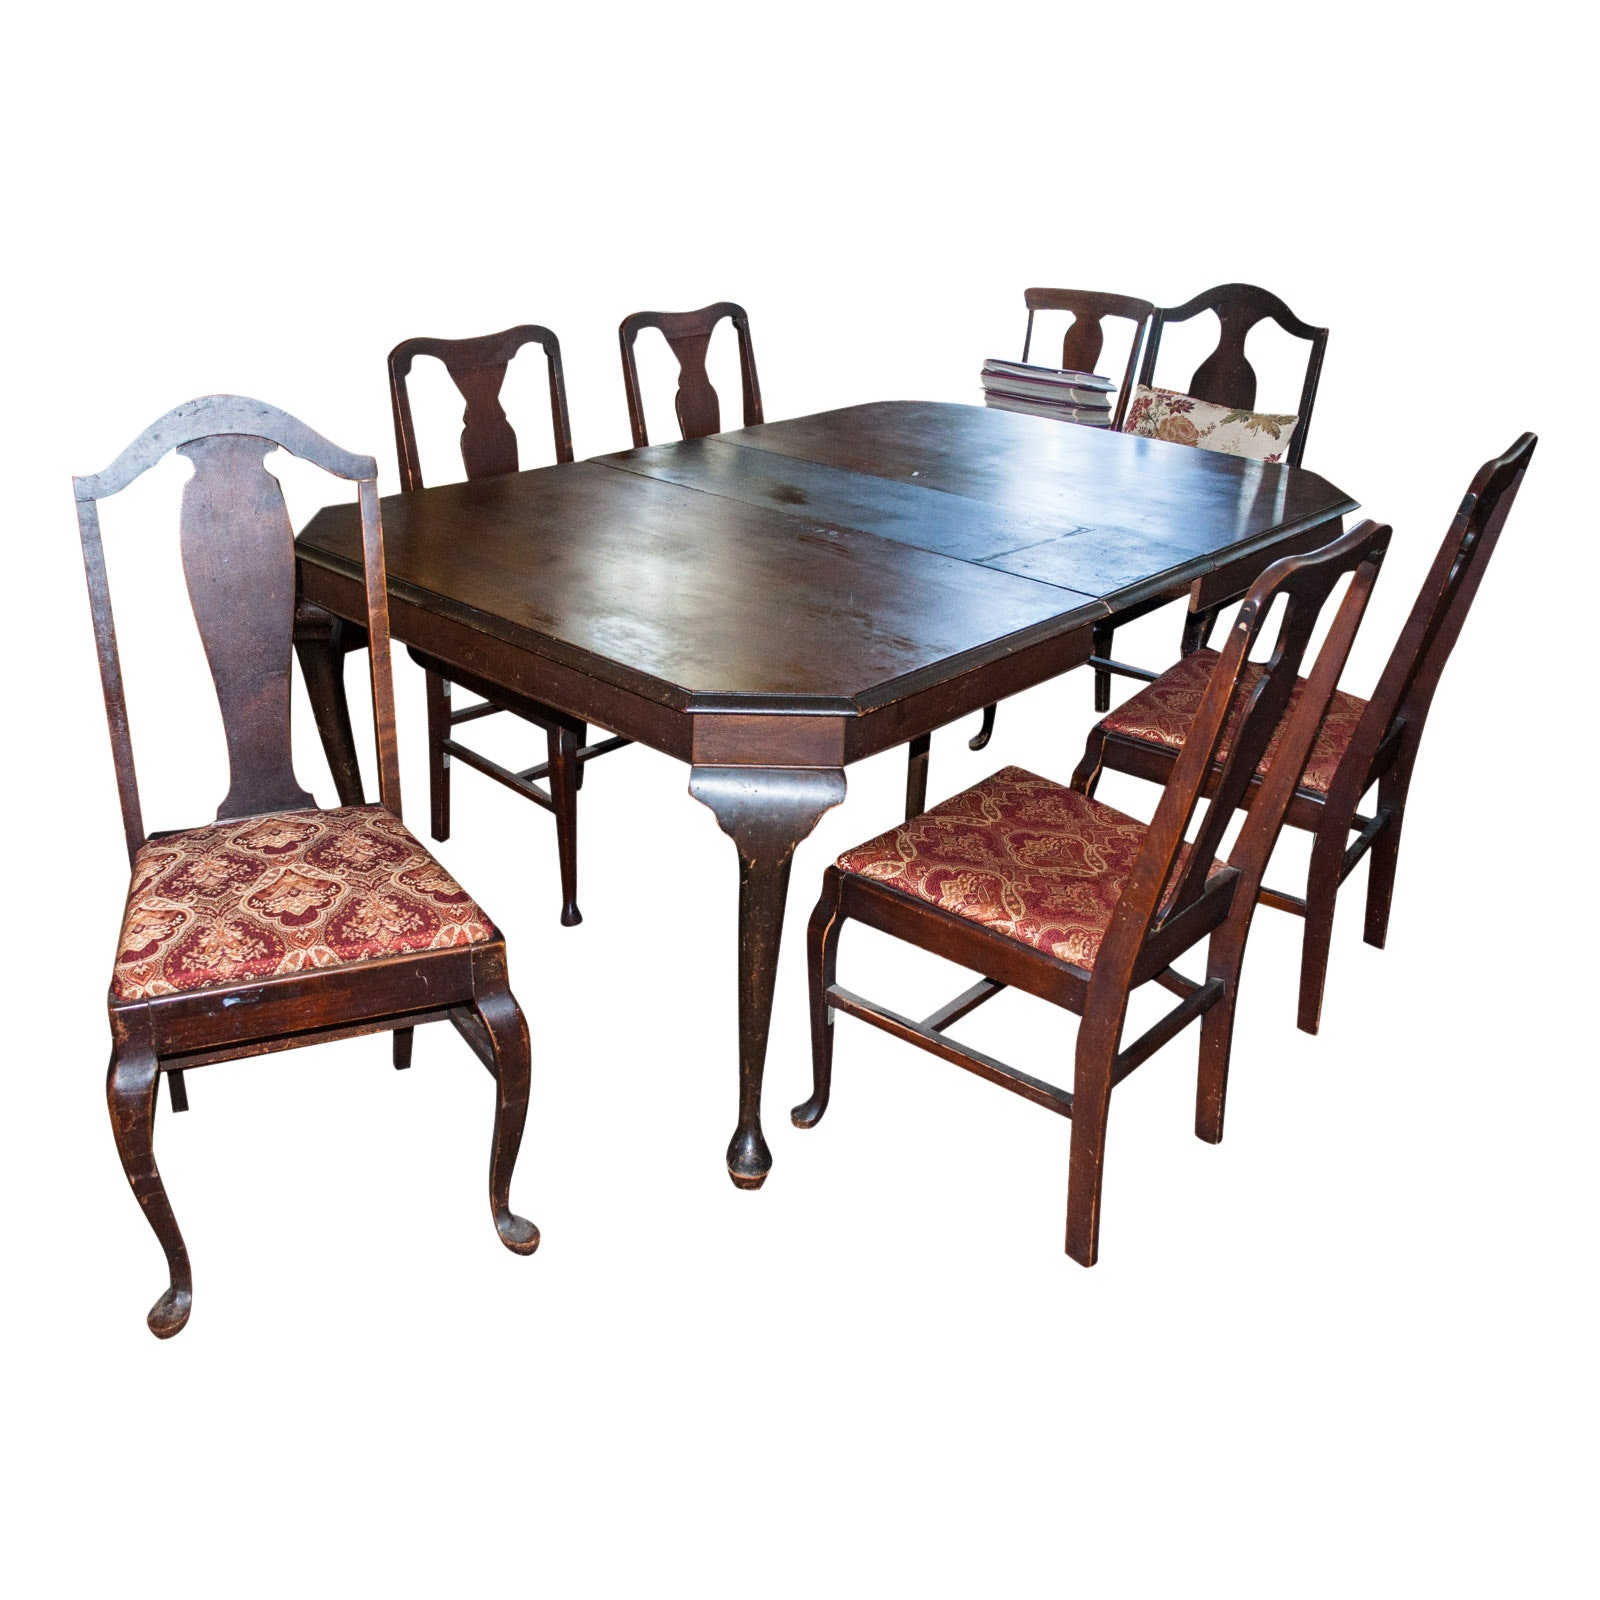 Charmant Vintage Voss Table Company Dining Table And Six Chairs ...